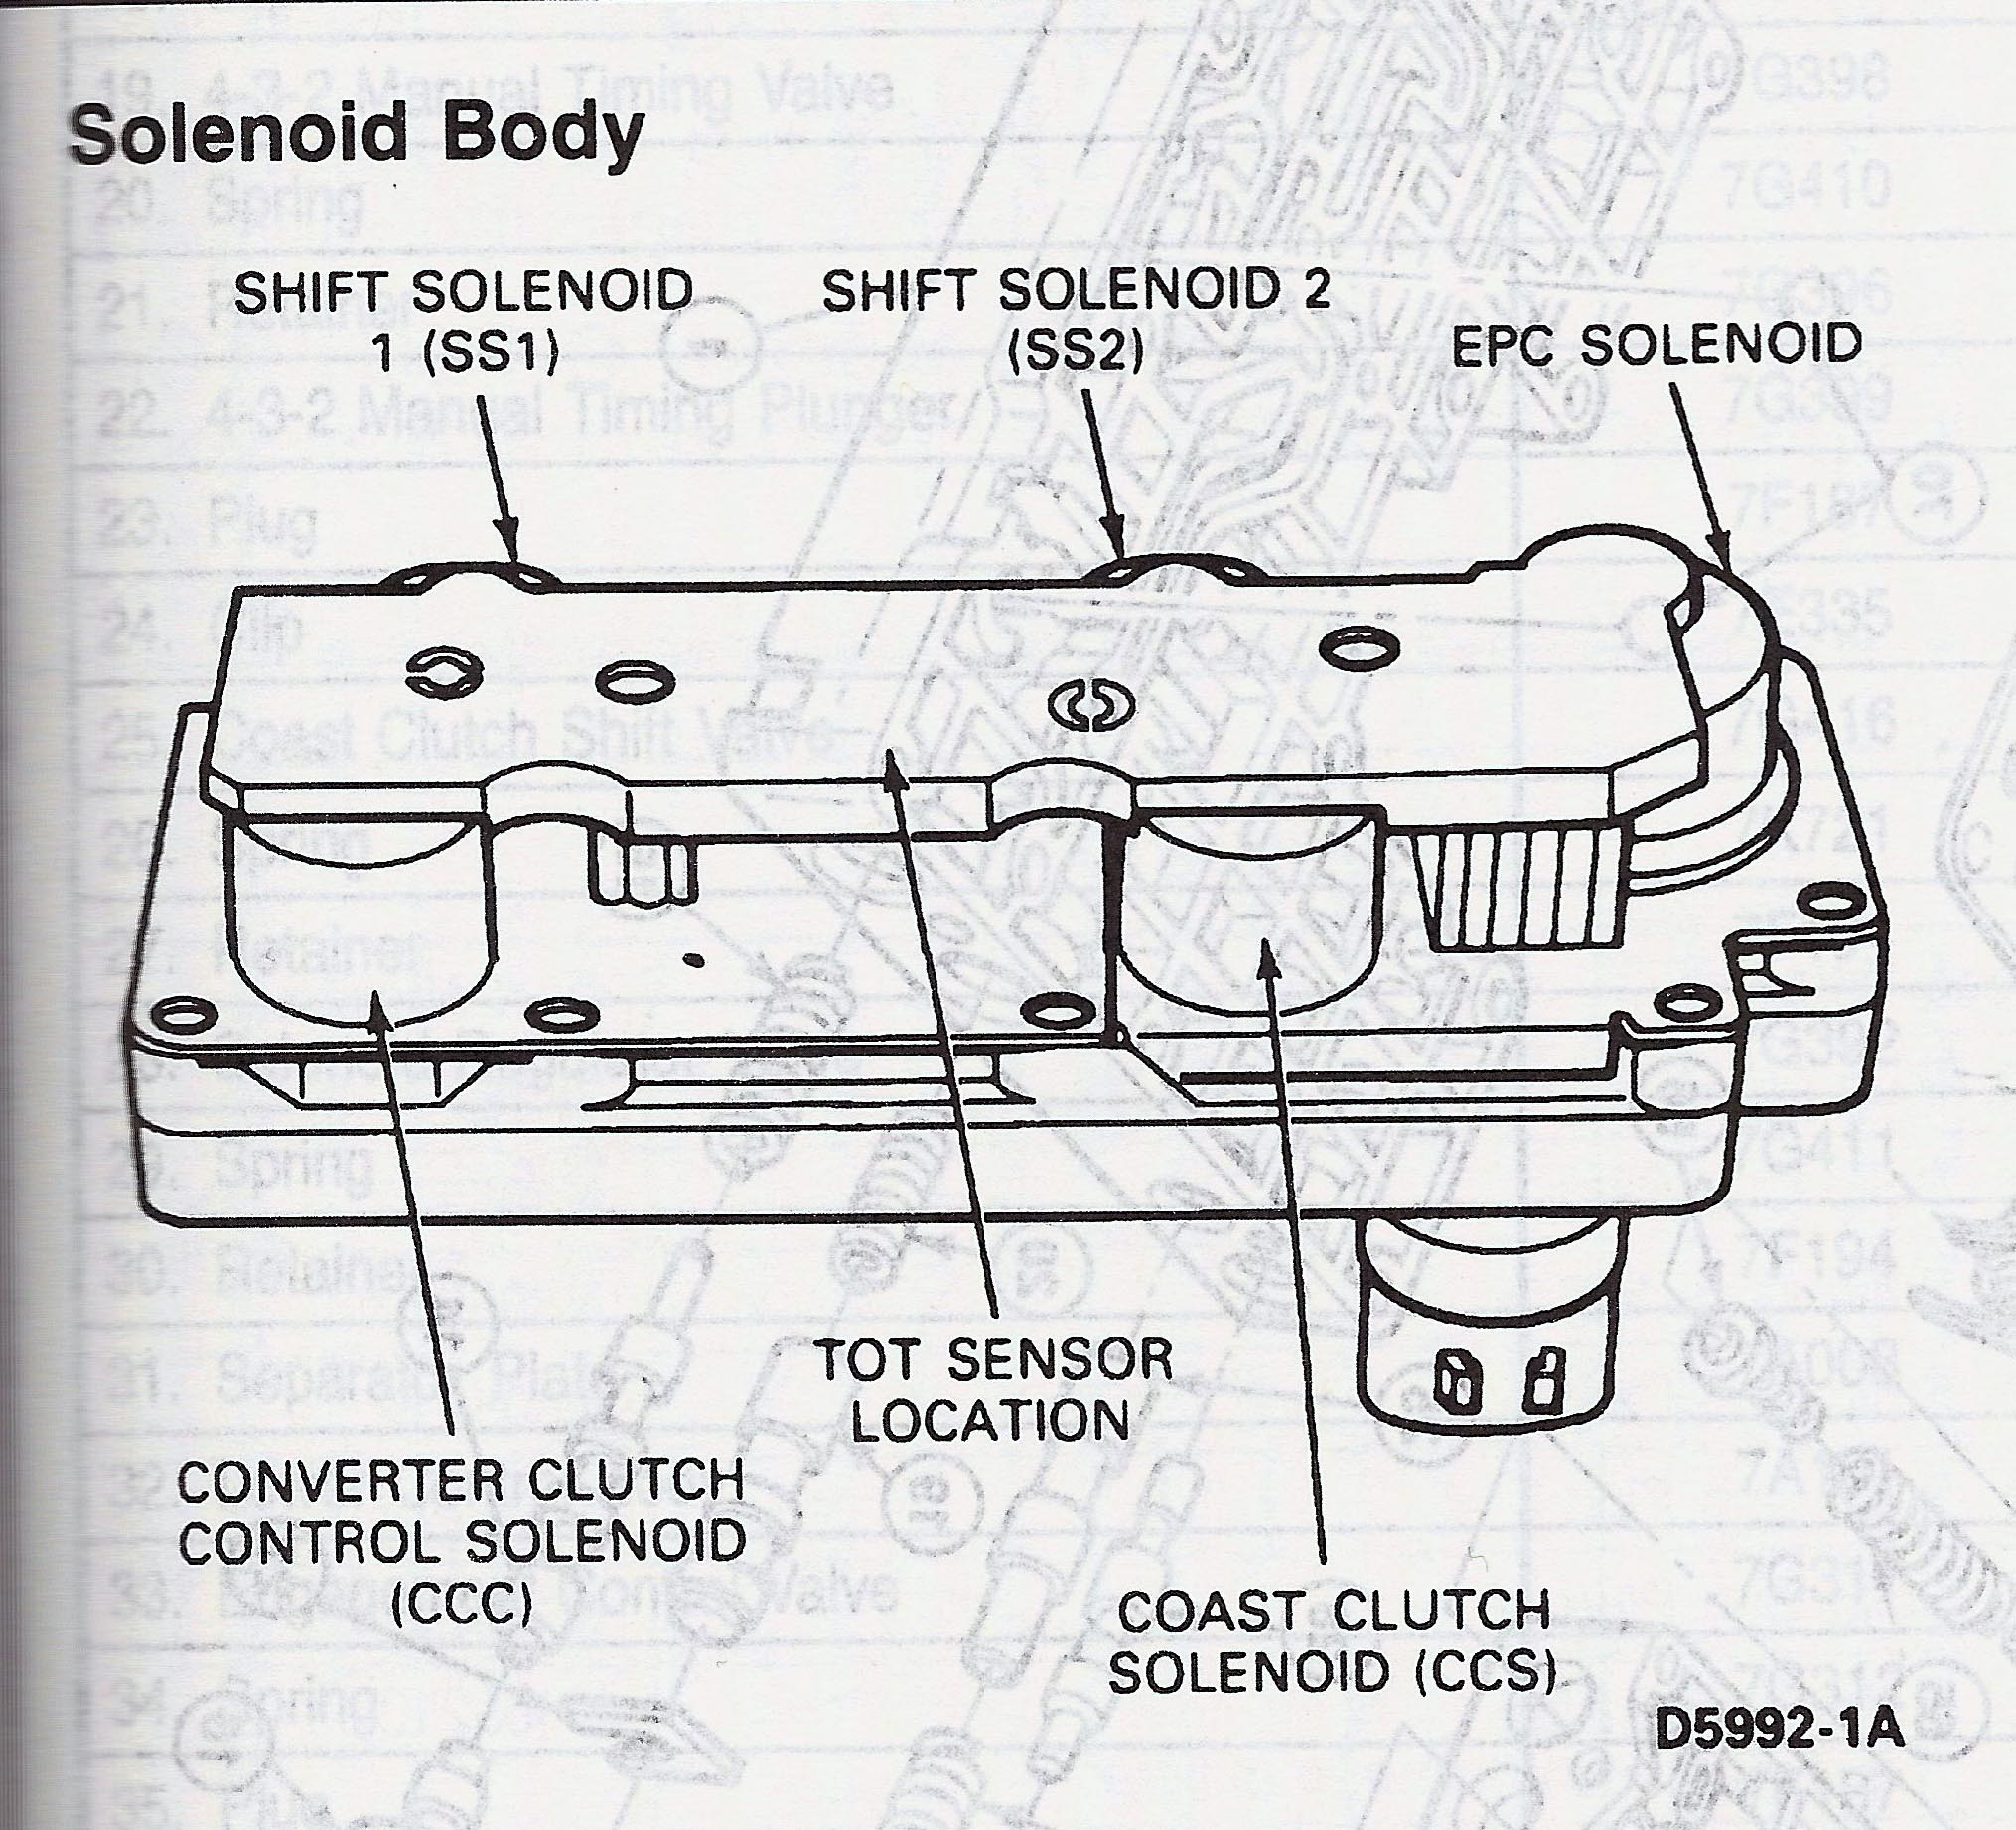 Powertrain Transmission E40d Wiring Diagram Trusted Diagrams 1996 Ford Schematic E4od Main Control Body Explore U2022